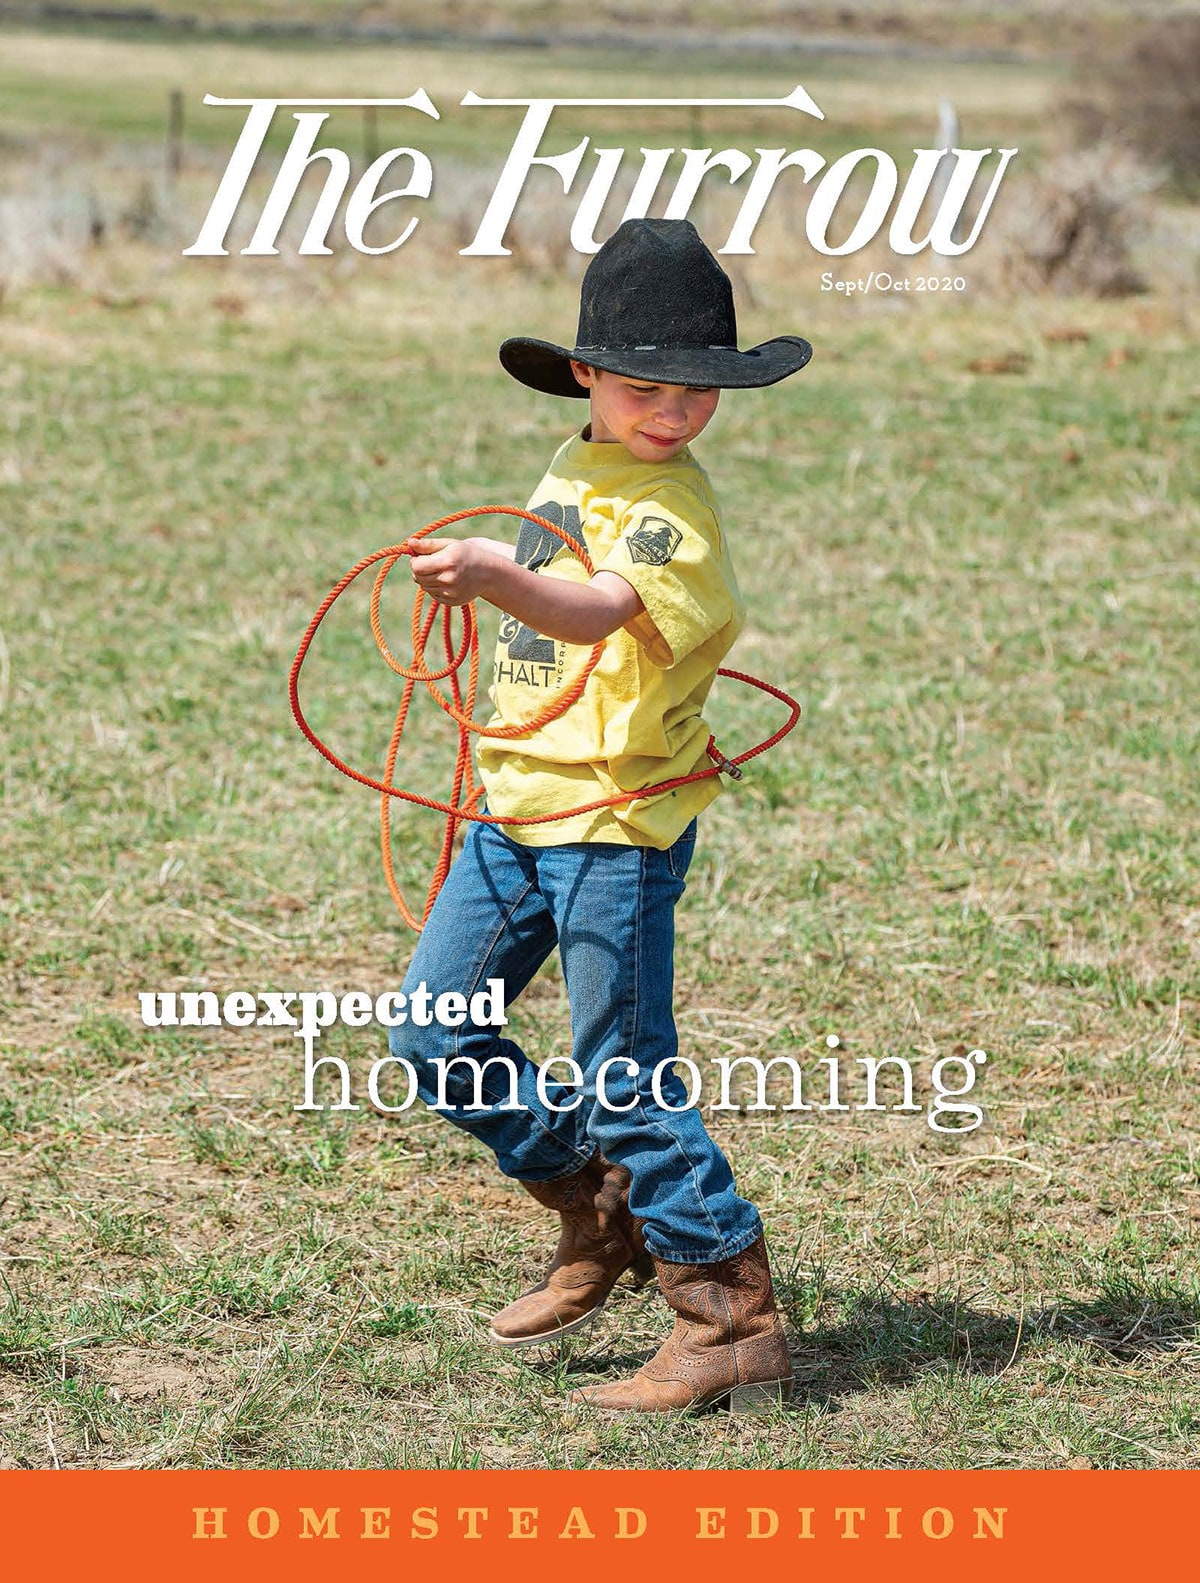 The Furrow - Sept/Oct 2020 Issue